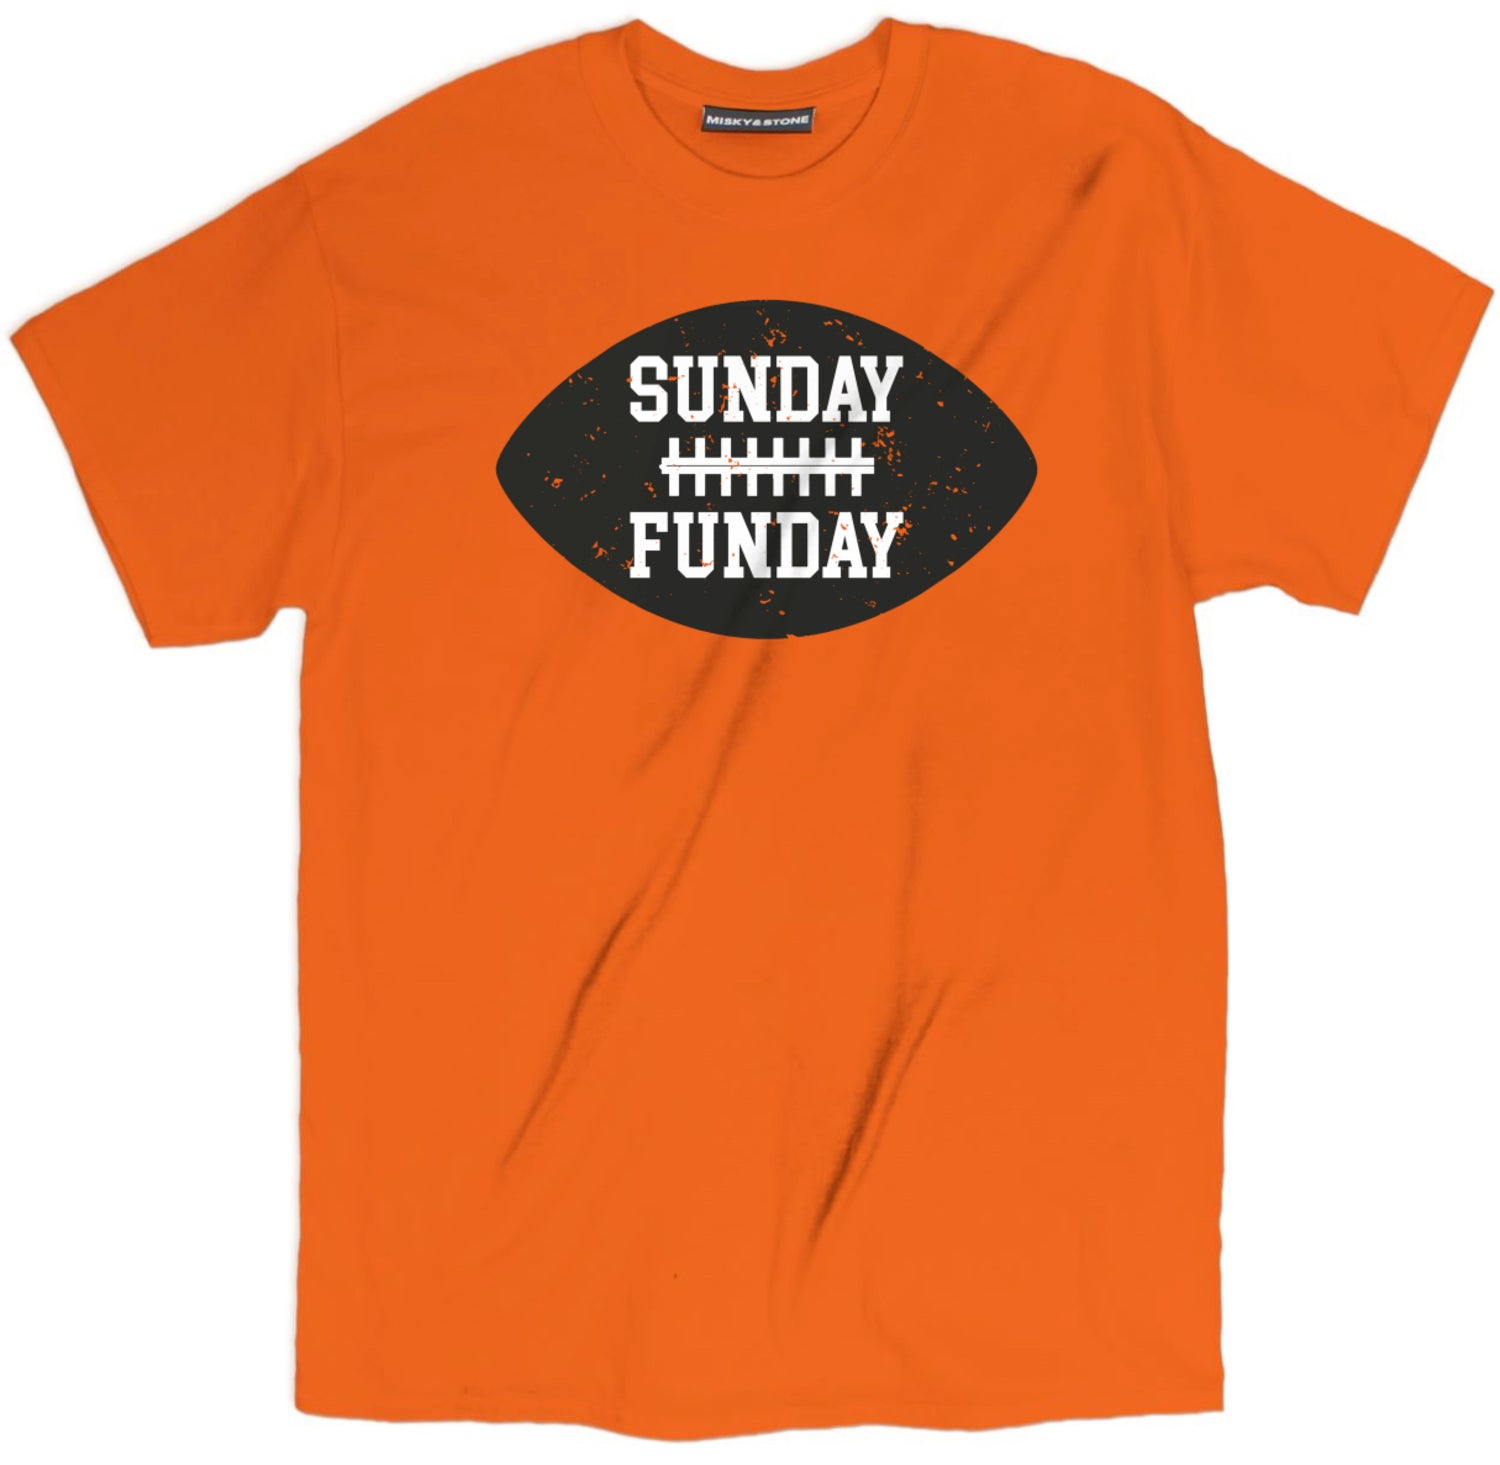 sunday funday shirt, sunday funday t shirt, sunday football t shirt, sunday shirt, sunday t shirt,